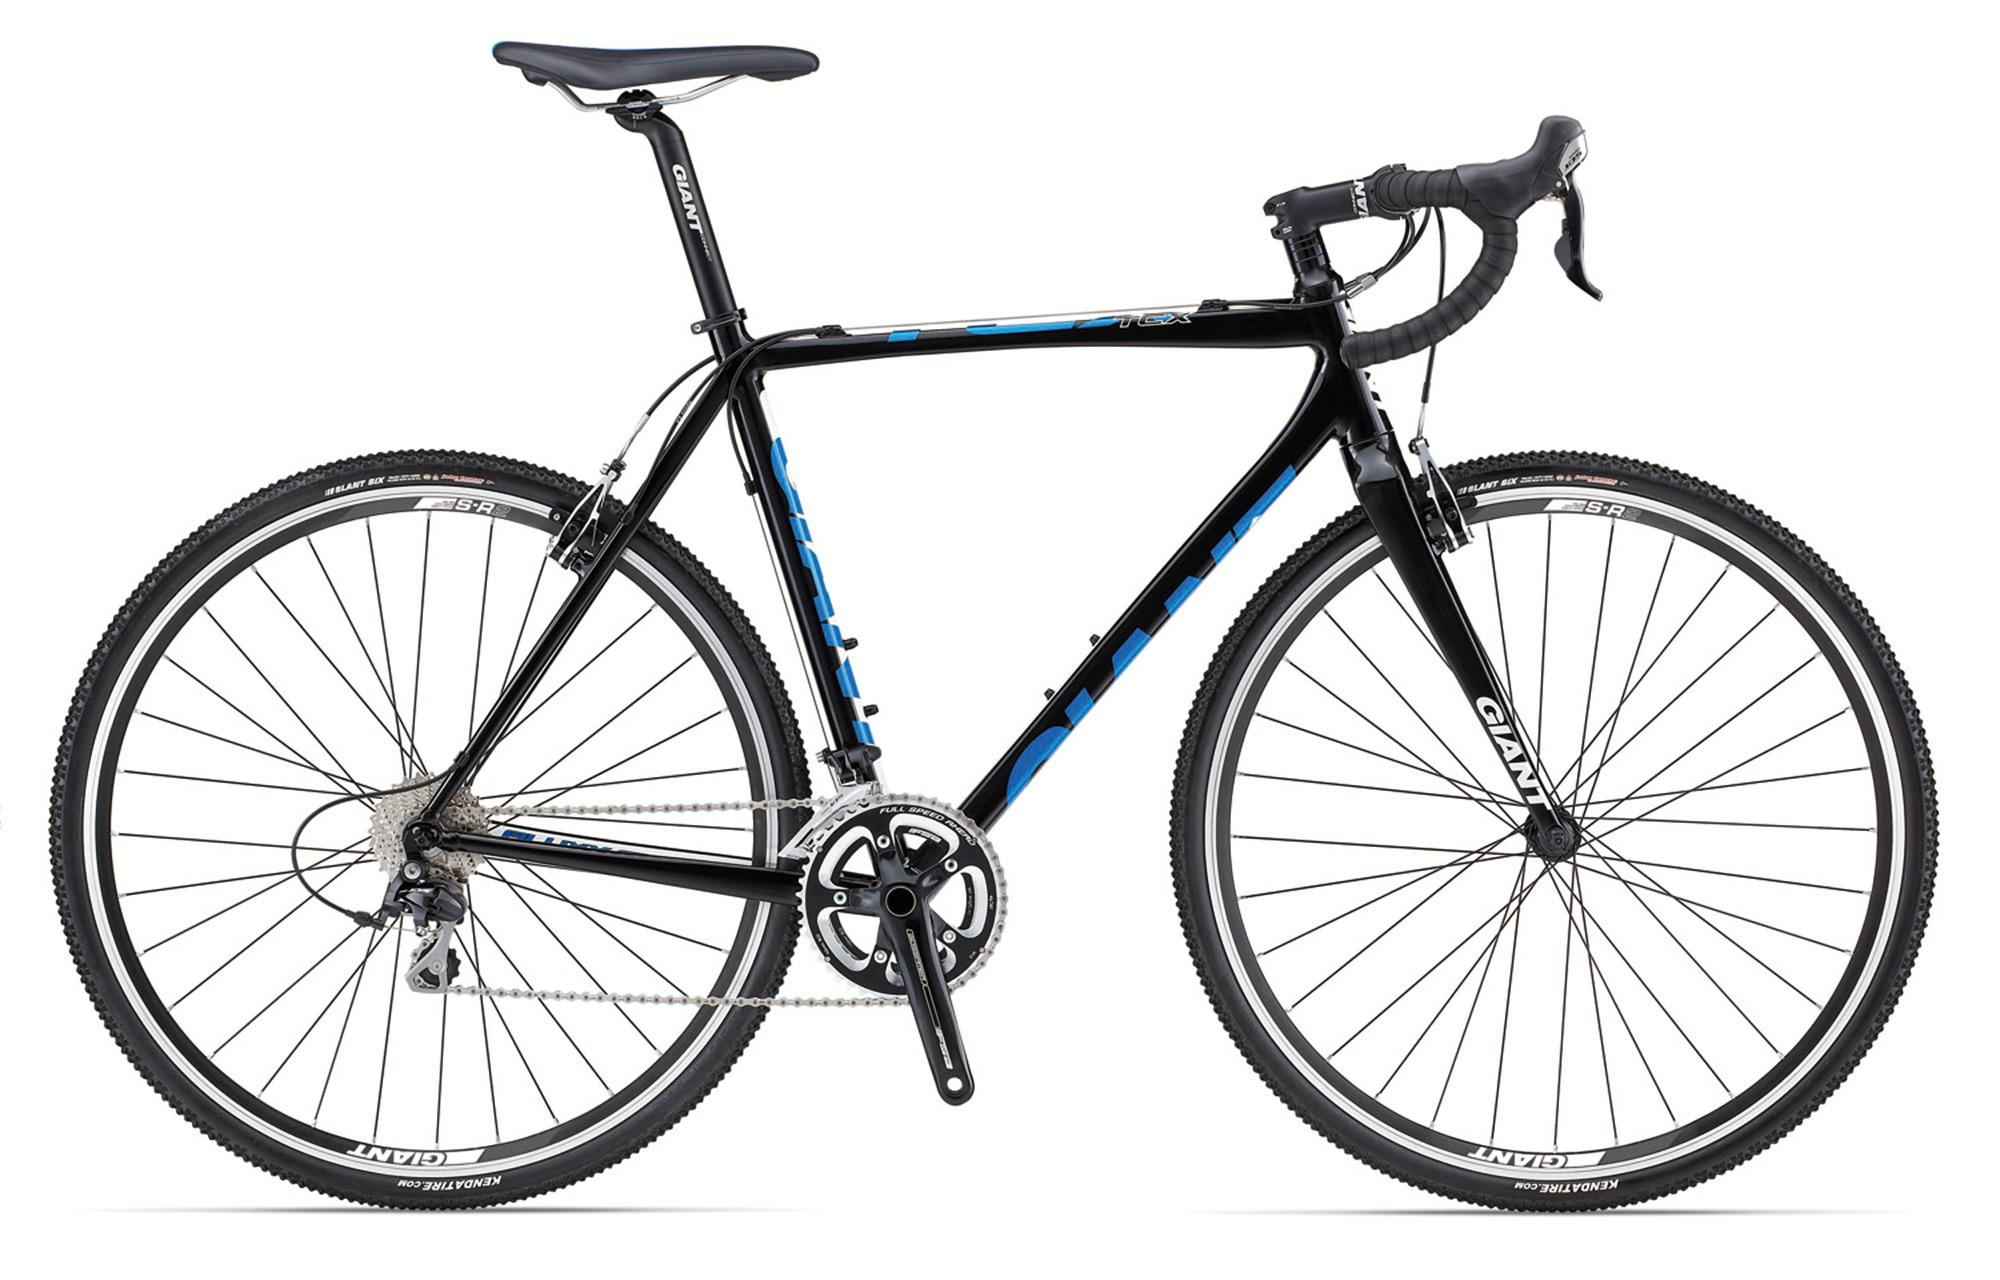 Giant TCX 1 XS Black/White/Blue Aluminium Cyclocross Bicycle - H2 Gear